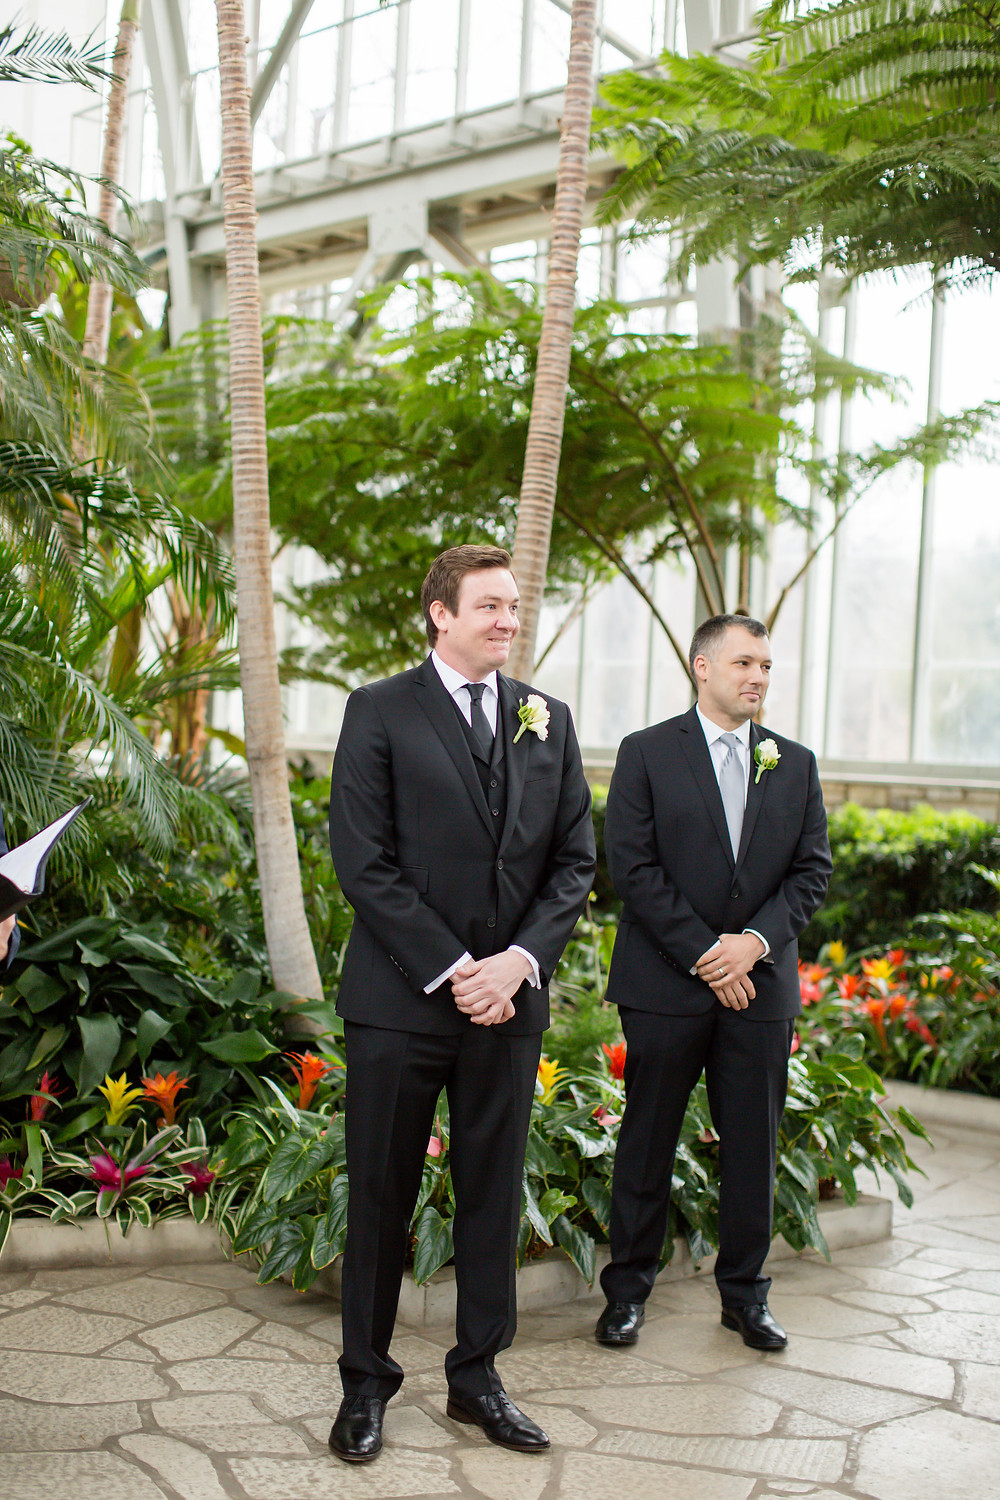 St. Louis Wedding Jewel Box